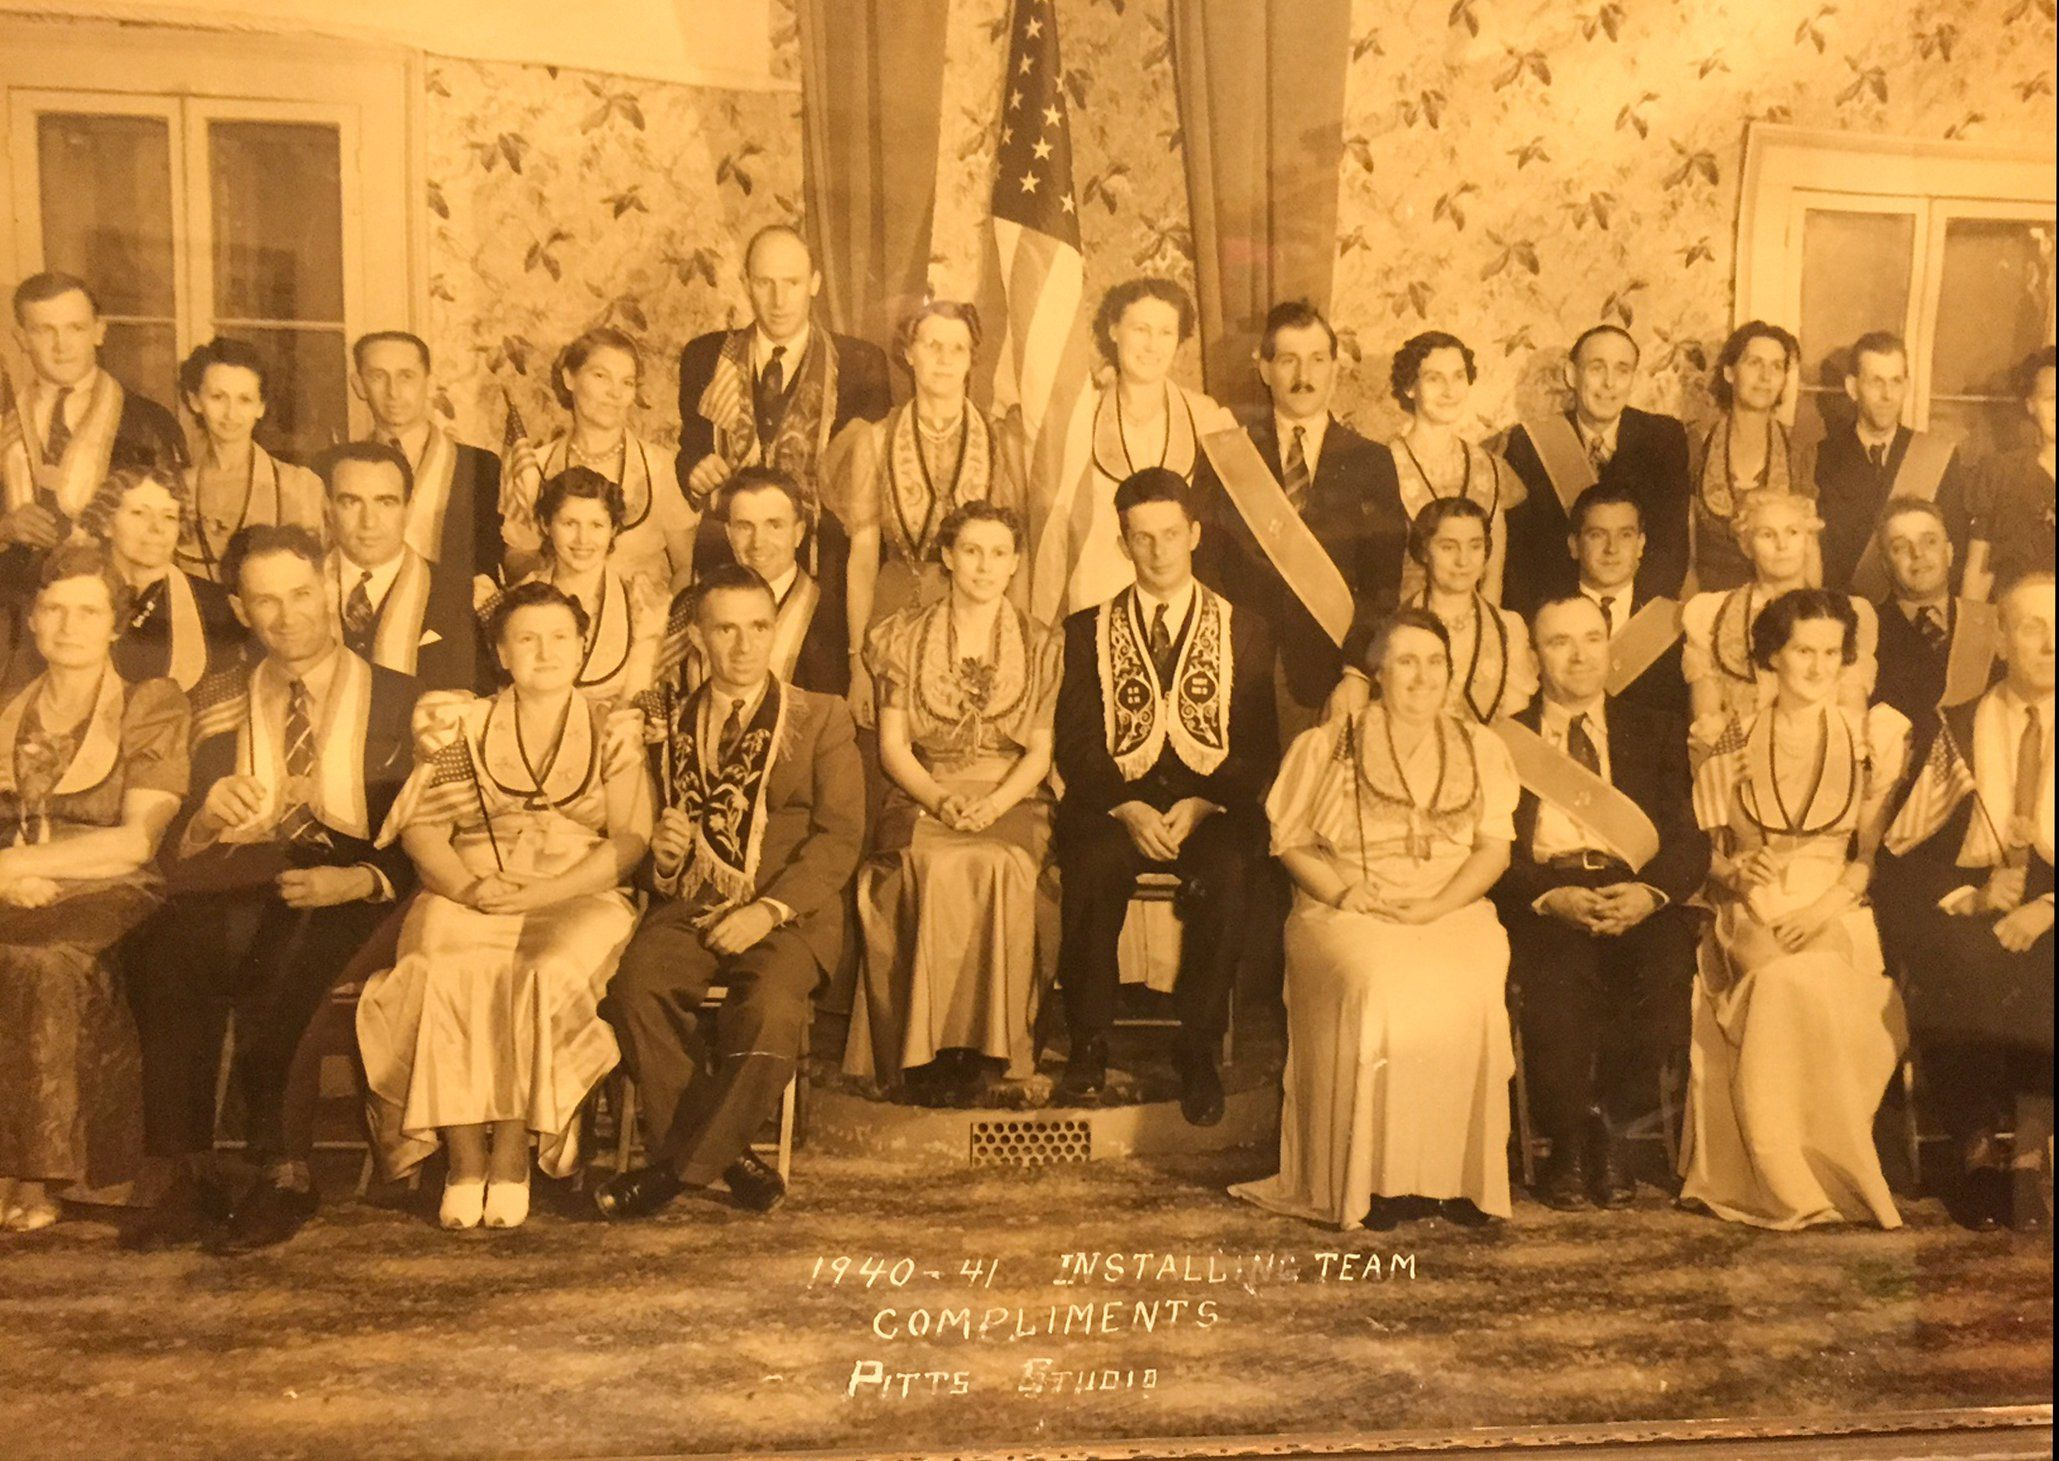 First called yolo odd fellows lodge because the city of